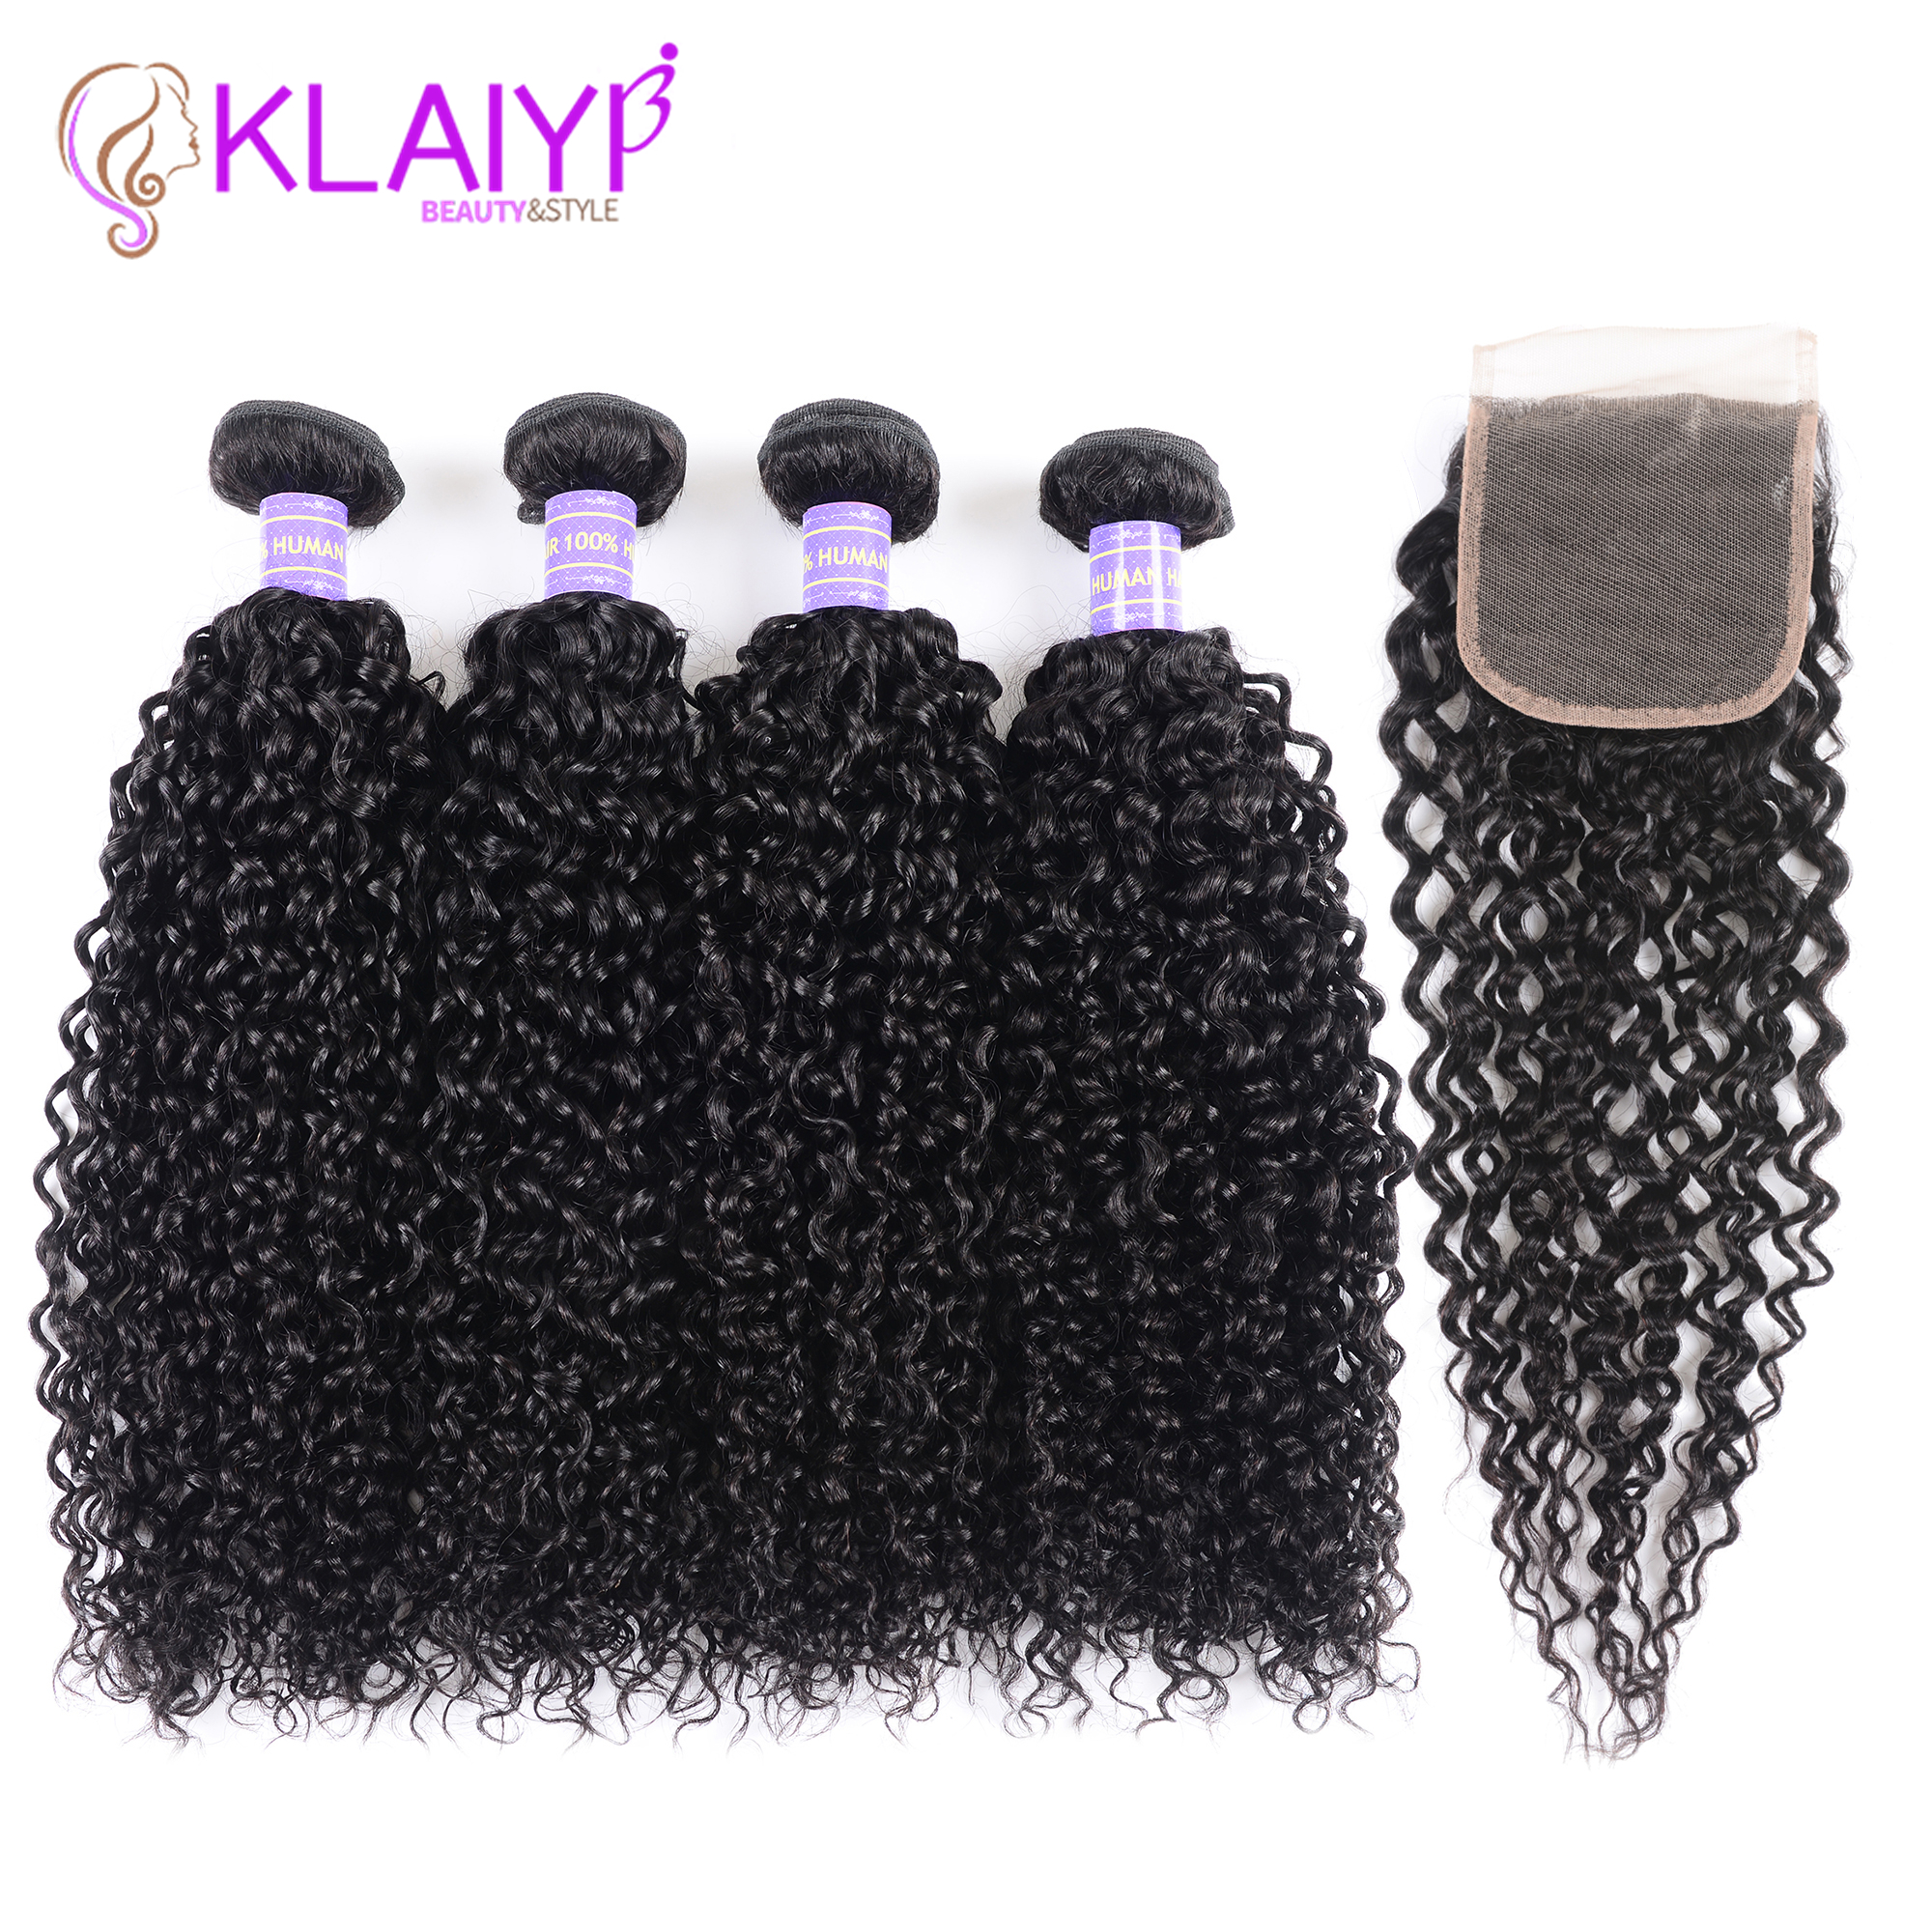 Klaiyi Hair Malaysia Curly Hair Bundles with Closure 4PCS Swiss Lace Closure With 3 Bundles Remy